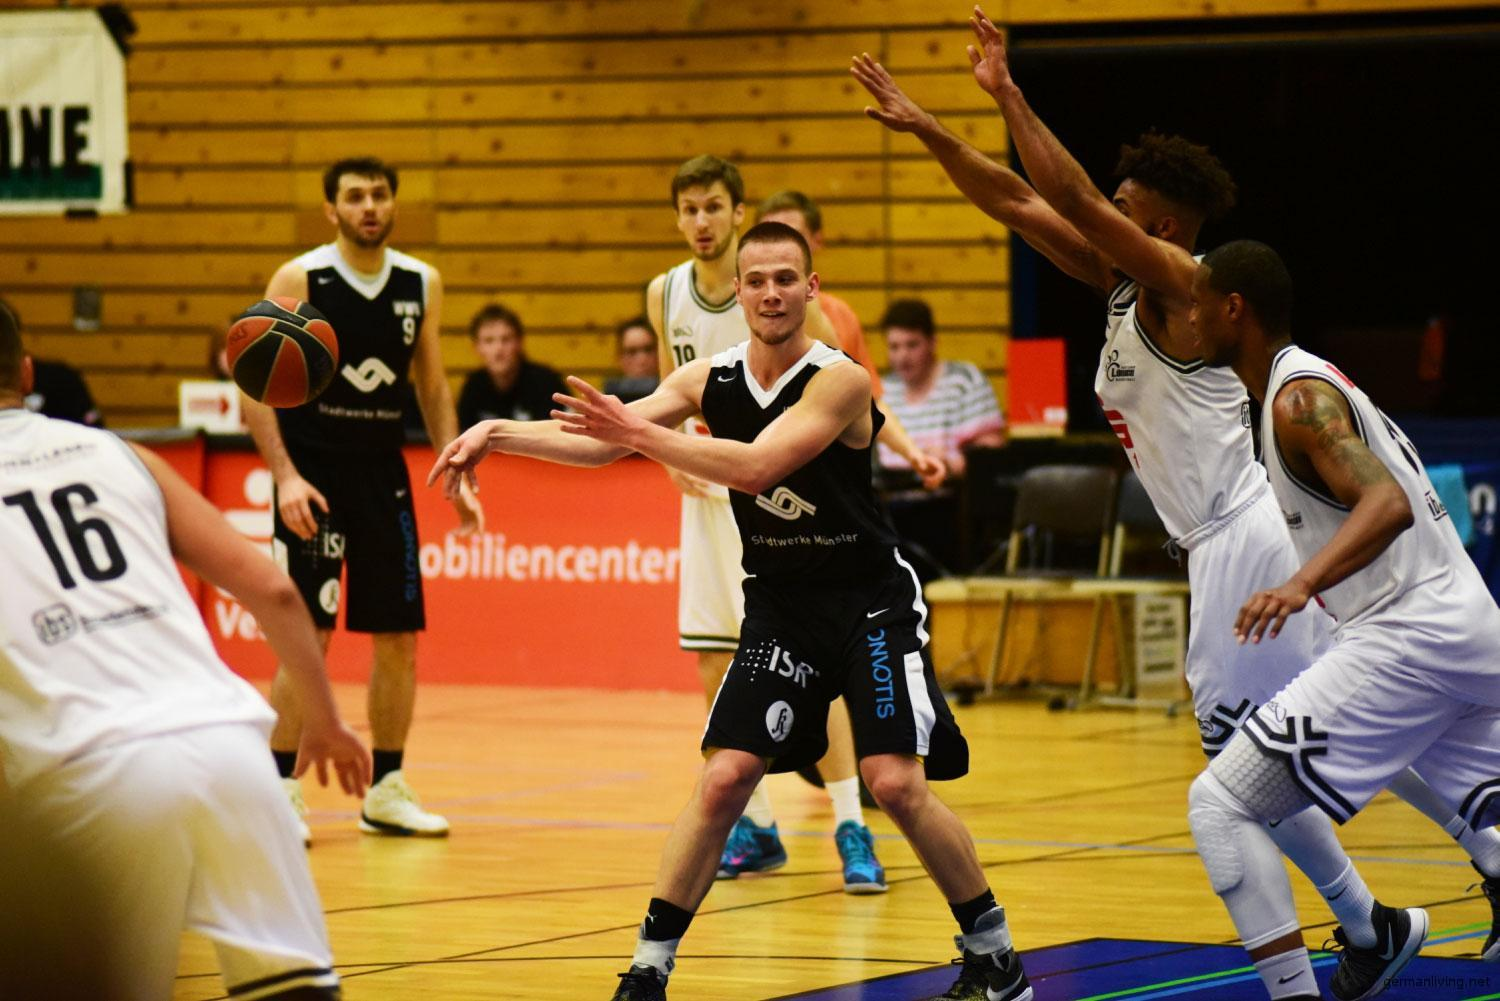 Tim Kosel WWU Baskets Münster